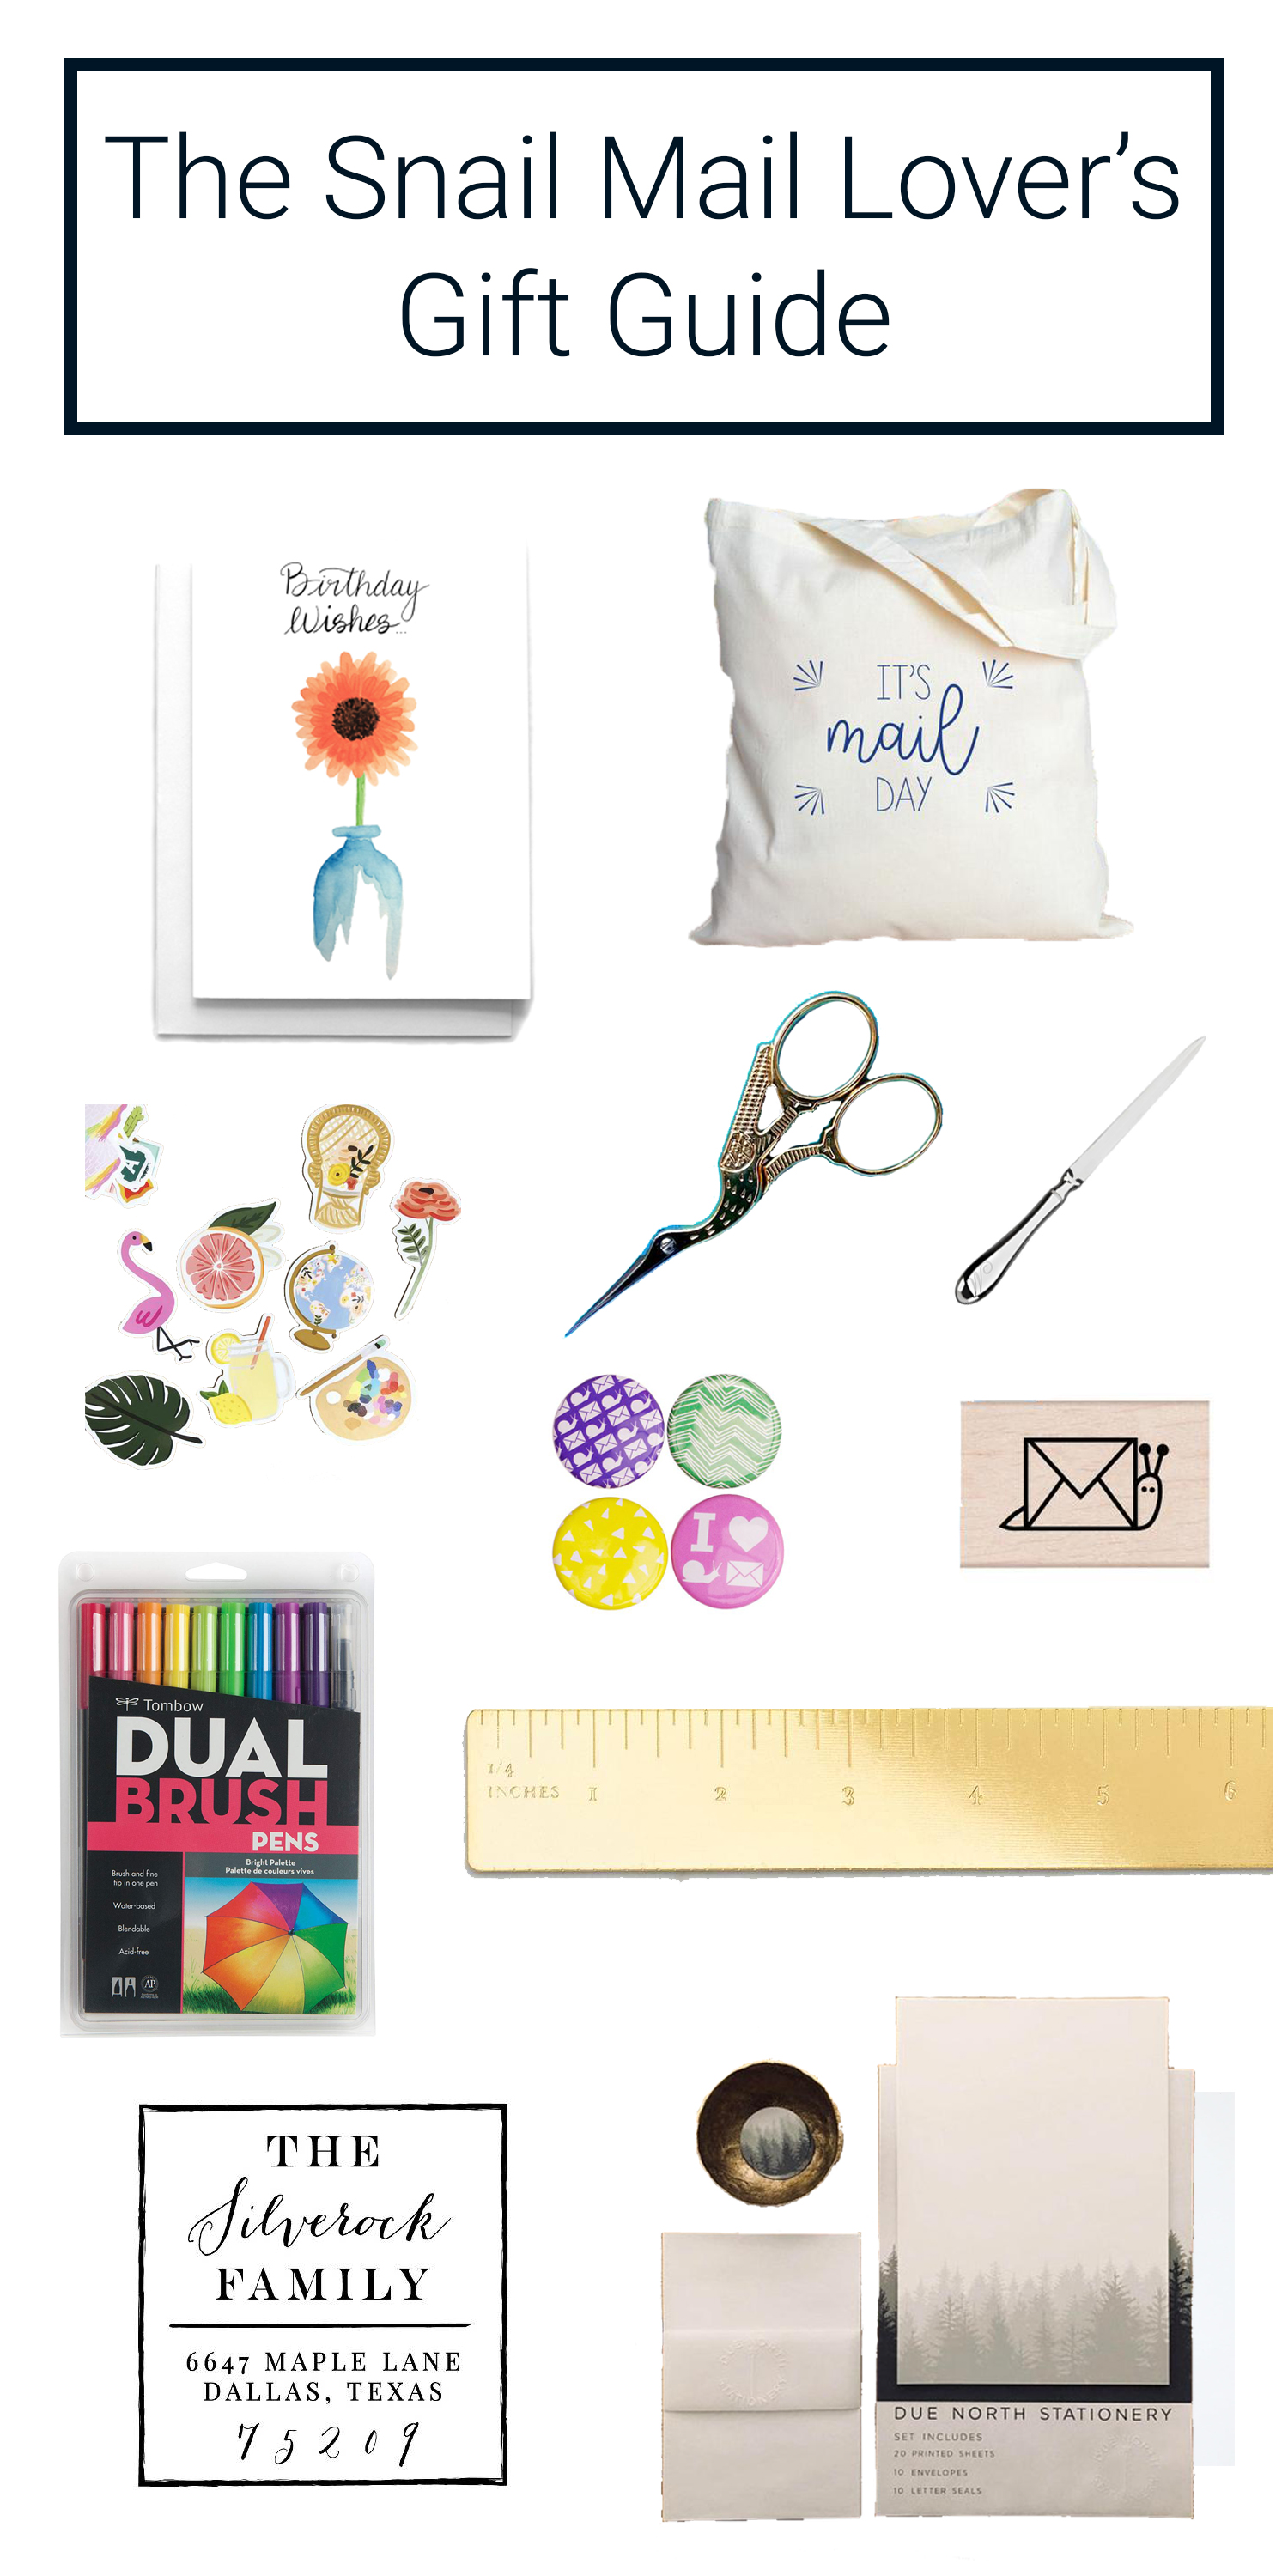 Cafe Notes + Company Snail Mail Lover's Gift Guide.jpg